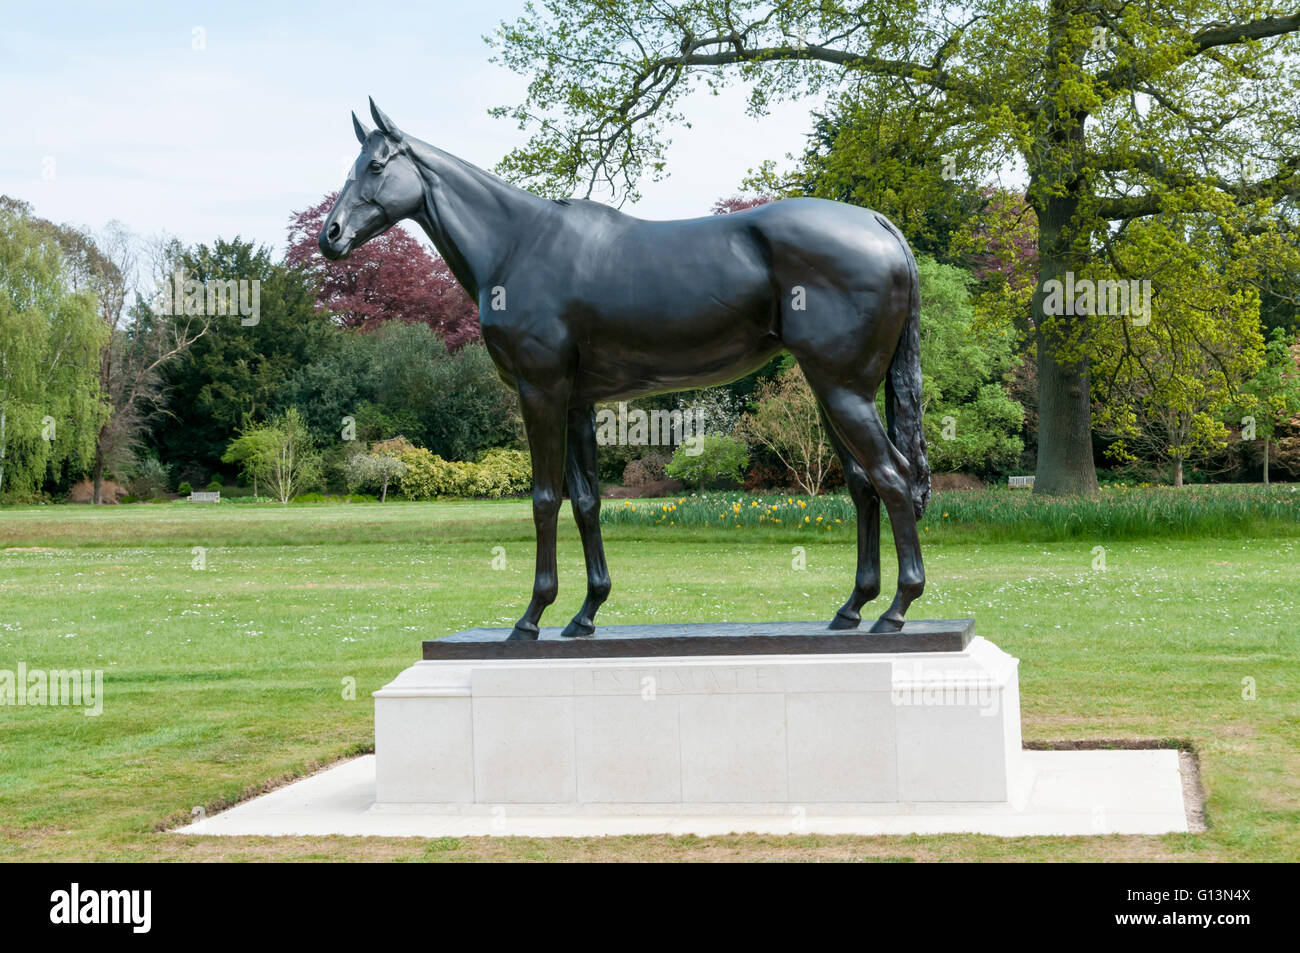 A statue of the queen's racehorse Estimate, at Sandringham.  By Tessa Campbell Fraser. - Stock Image